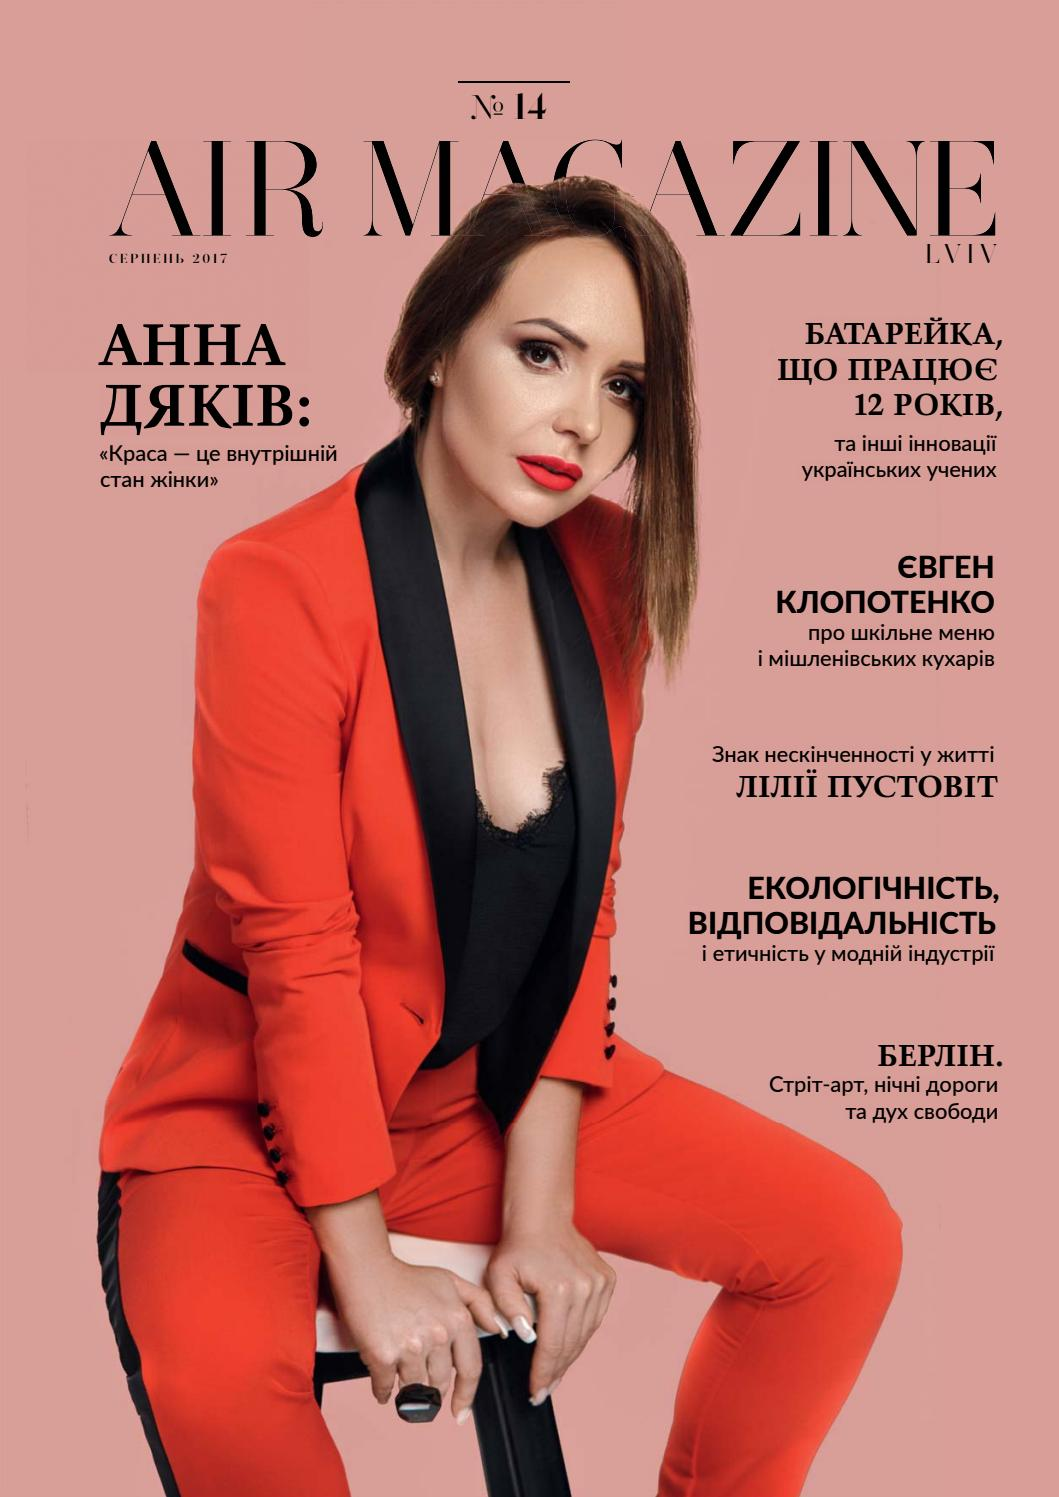 Air magazine lviv  14 by AIR MAGAZINE LVIV - issuu fdf188d0f3002